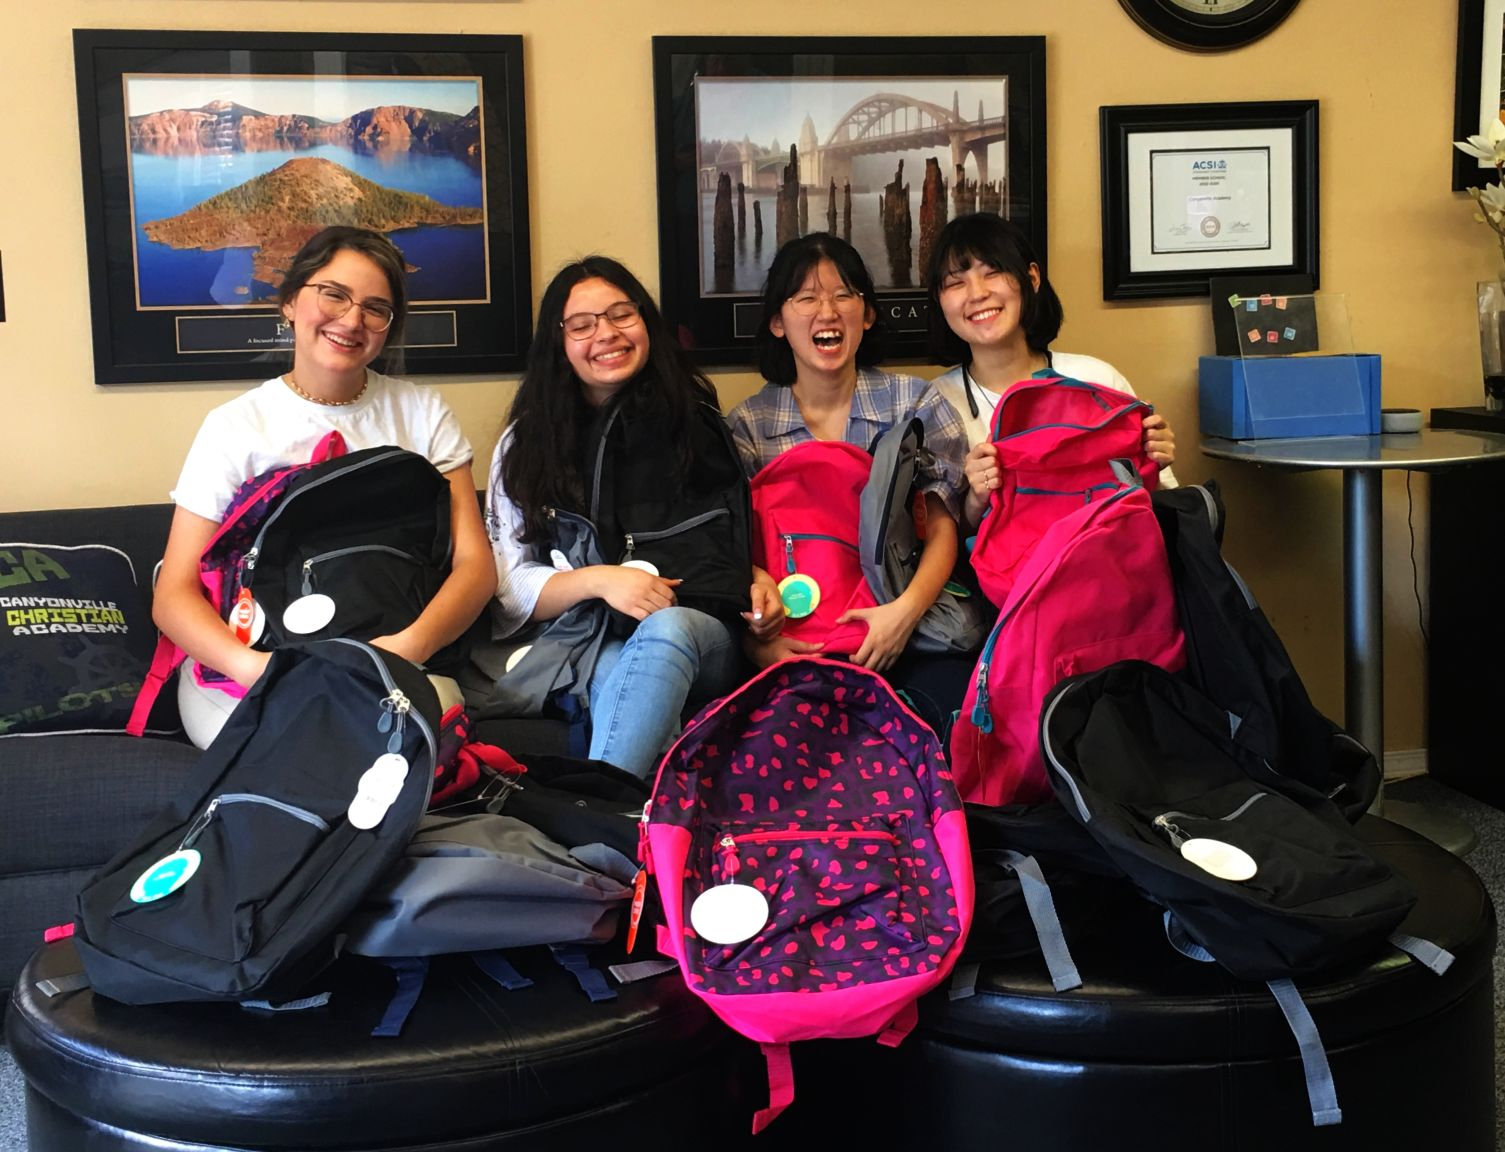 Four Canyonville Academy students pose with the backpacks filled with supplies to be donated to local schools